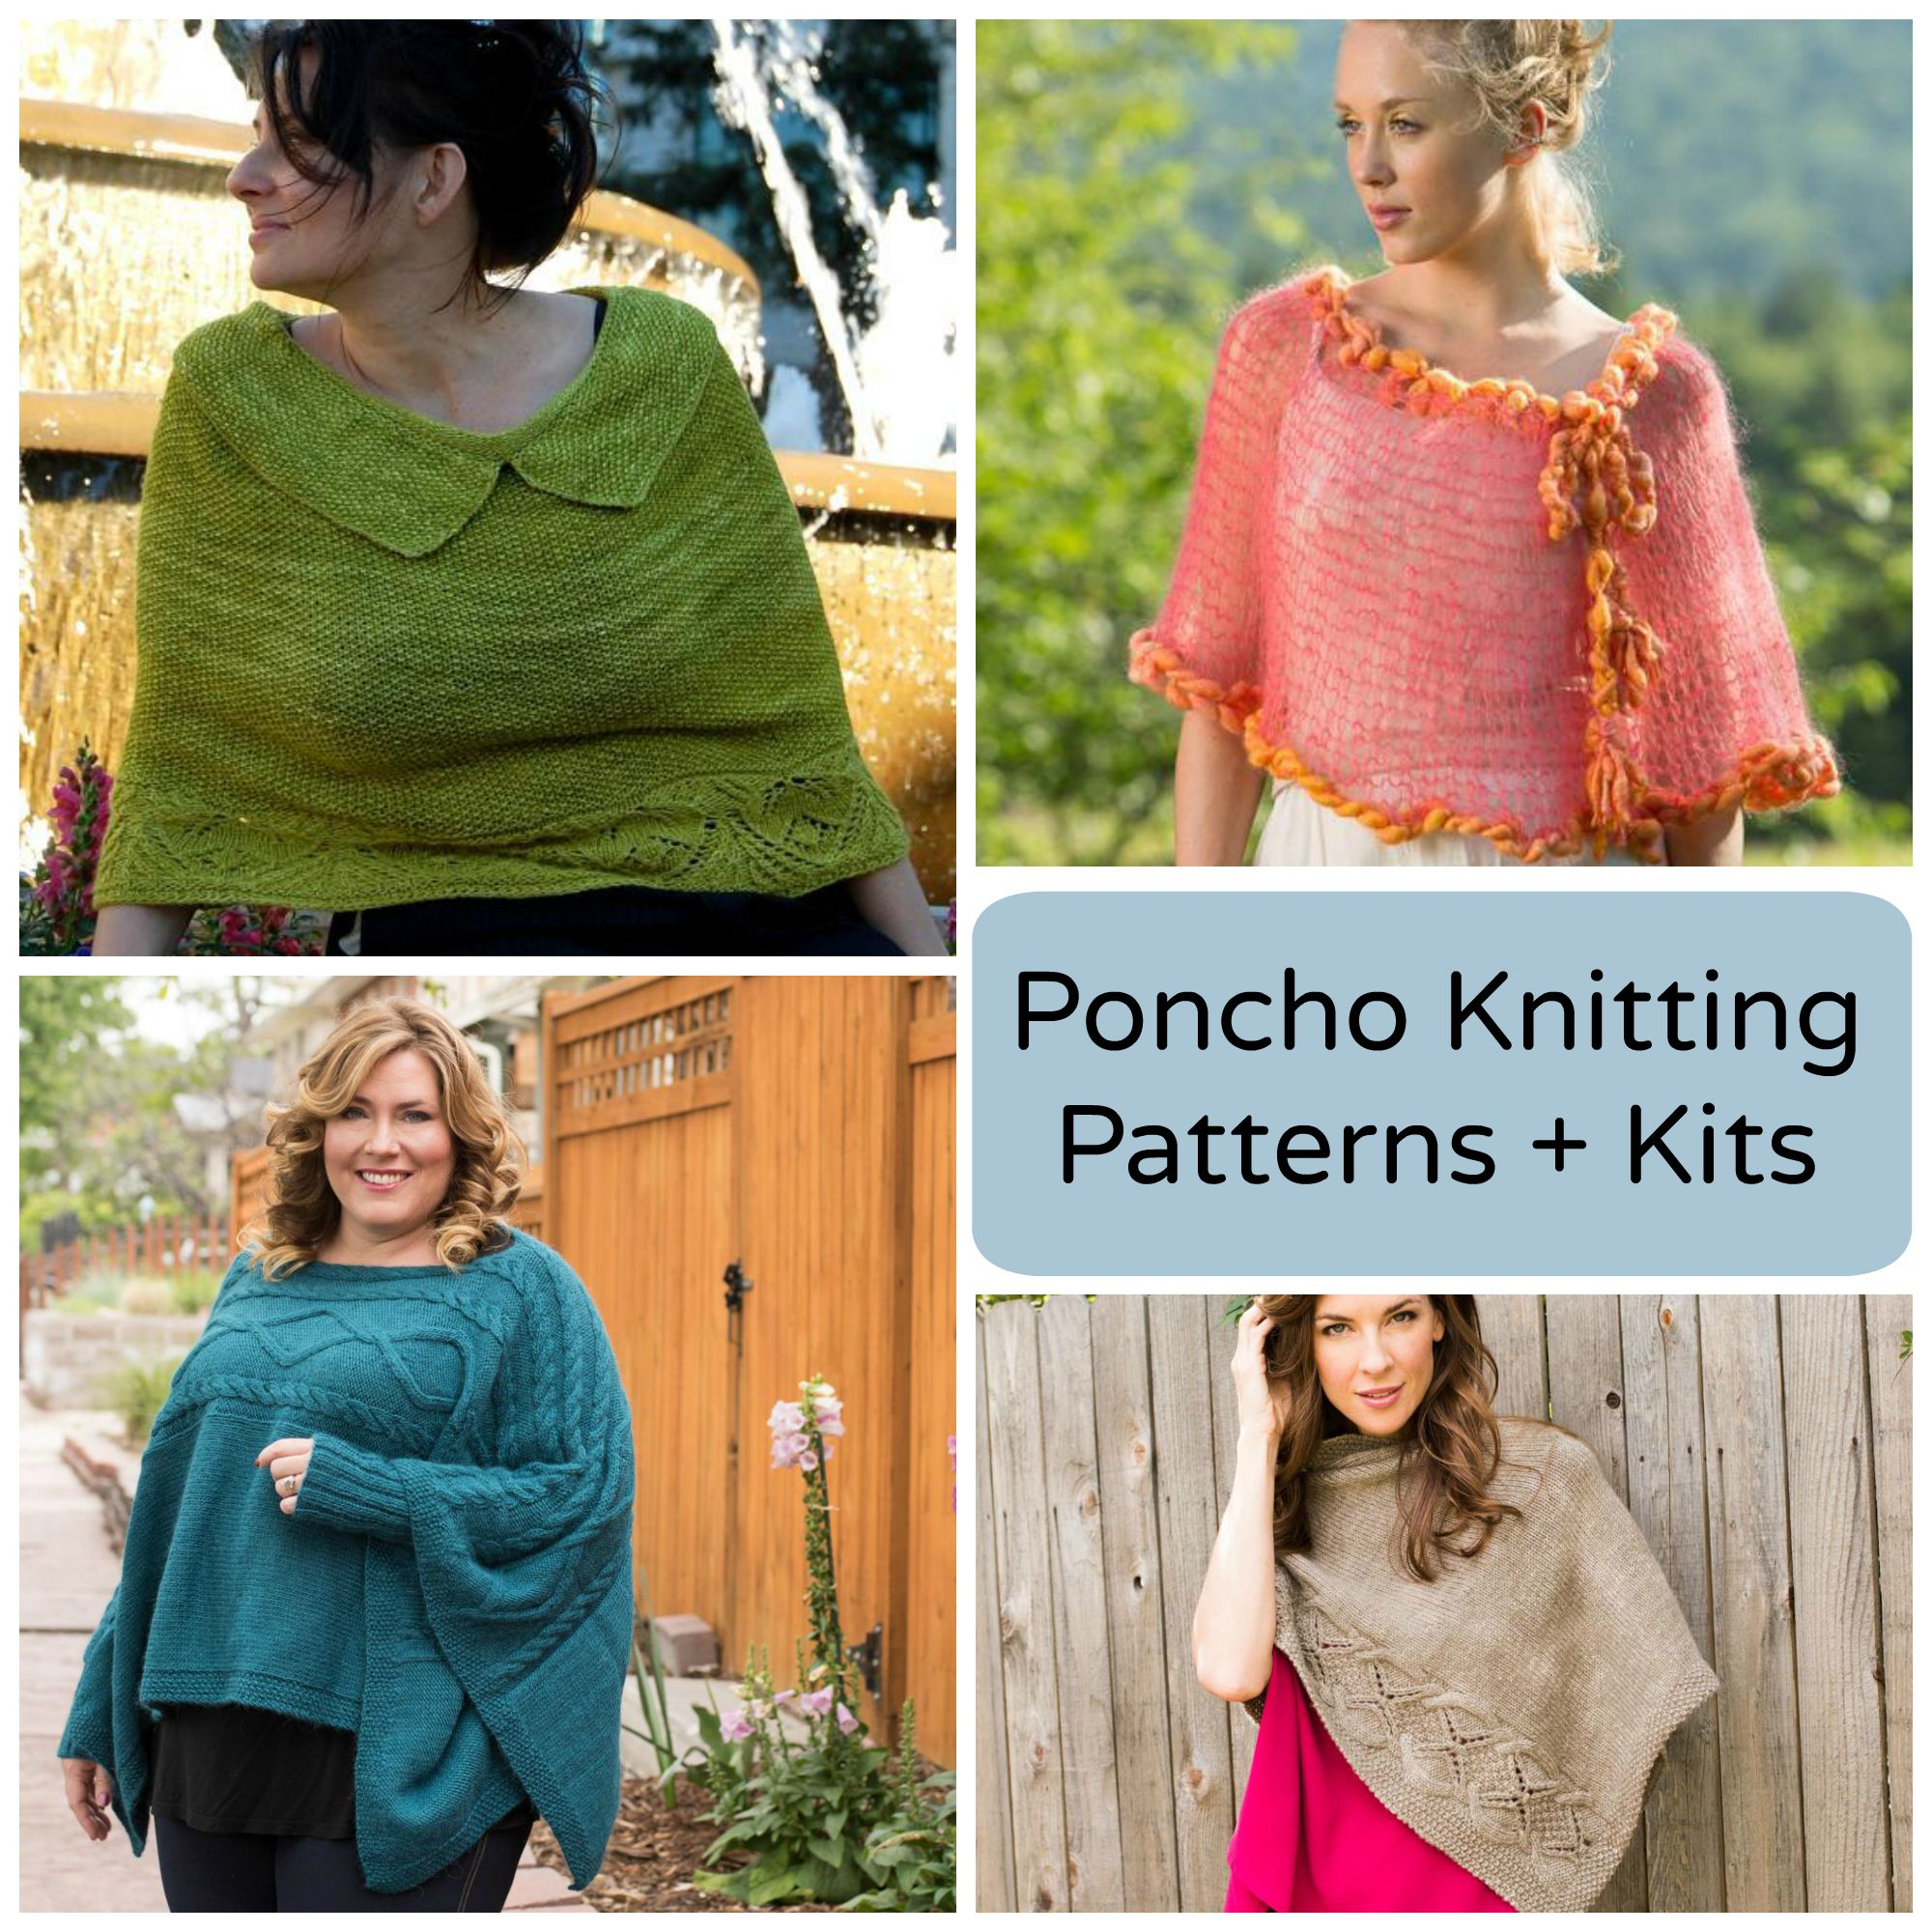 Poncho Pattern Knit Modern Stylish Poncho Knitting Patterns Kits